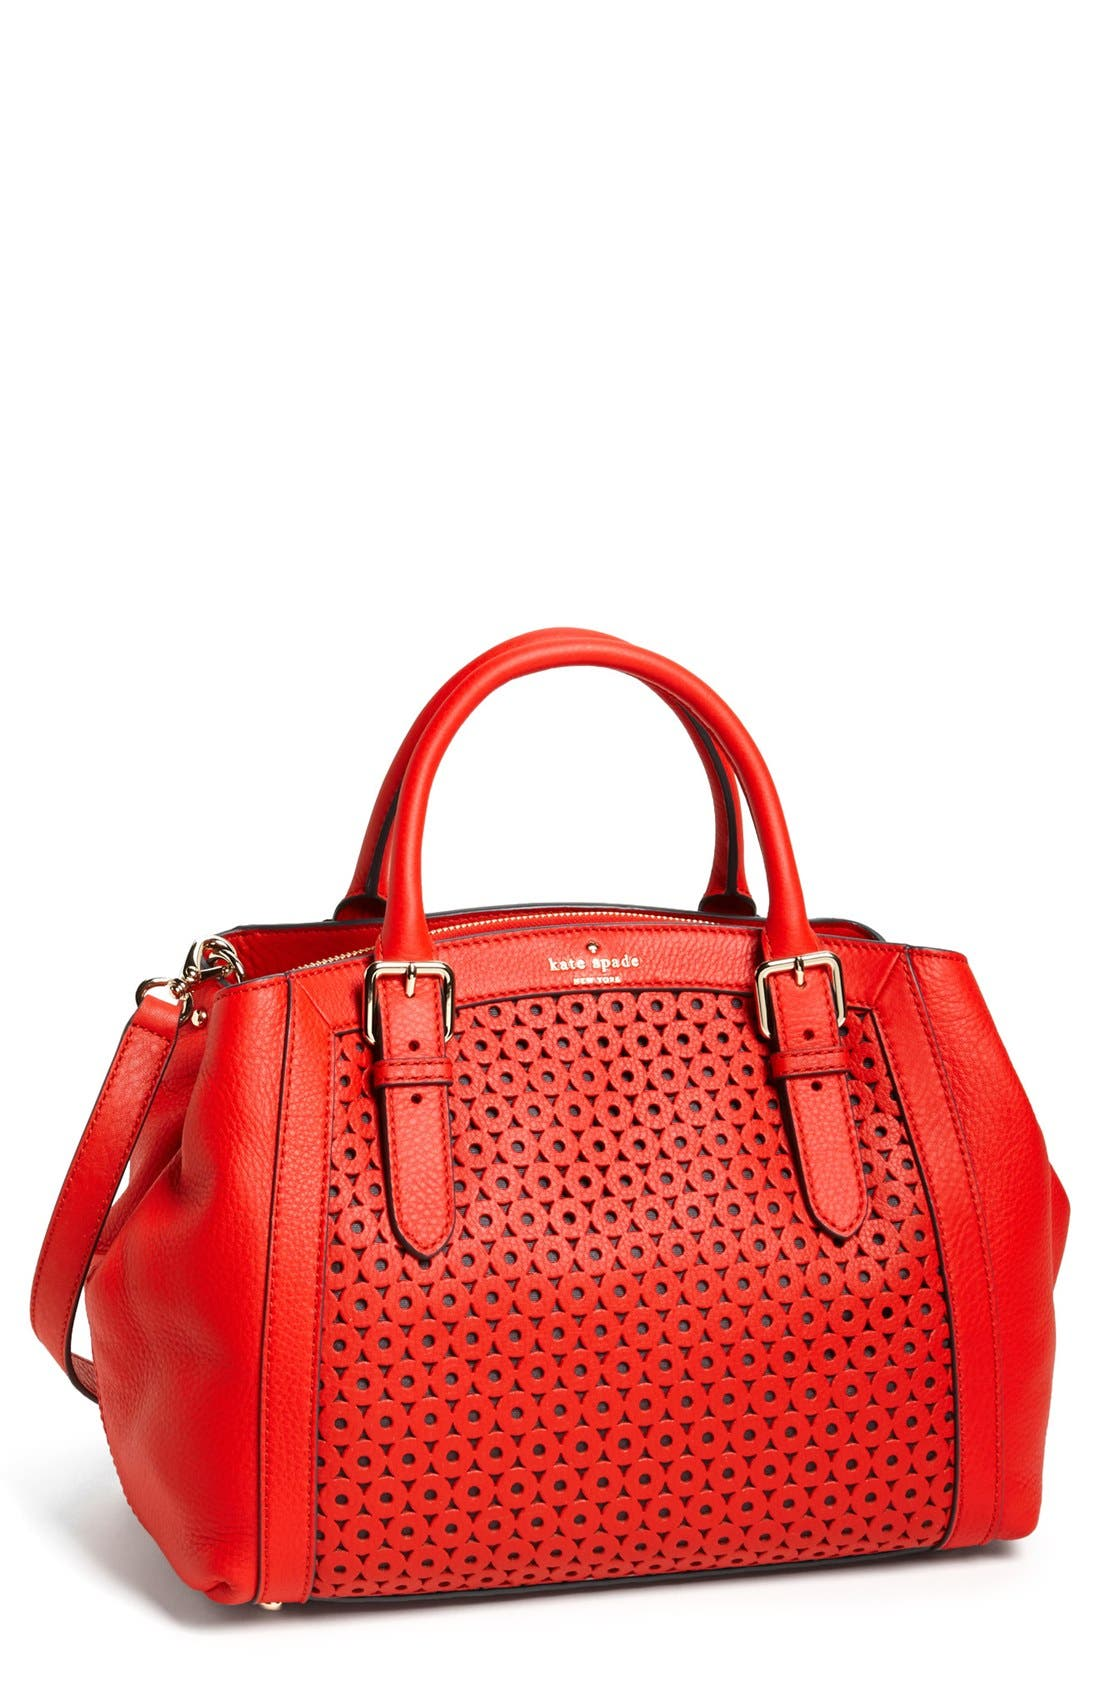 Alternate Image 1 Selected - kate spade new york 'mercer isle - sloan' satchel